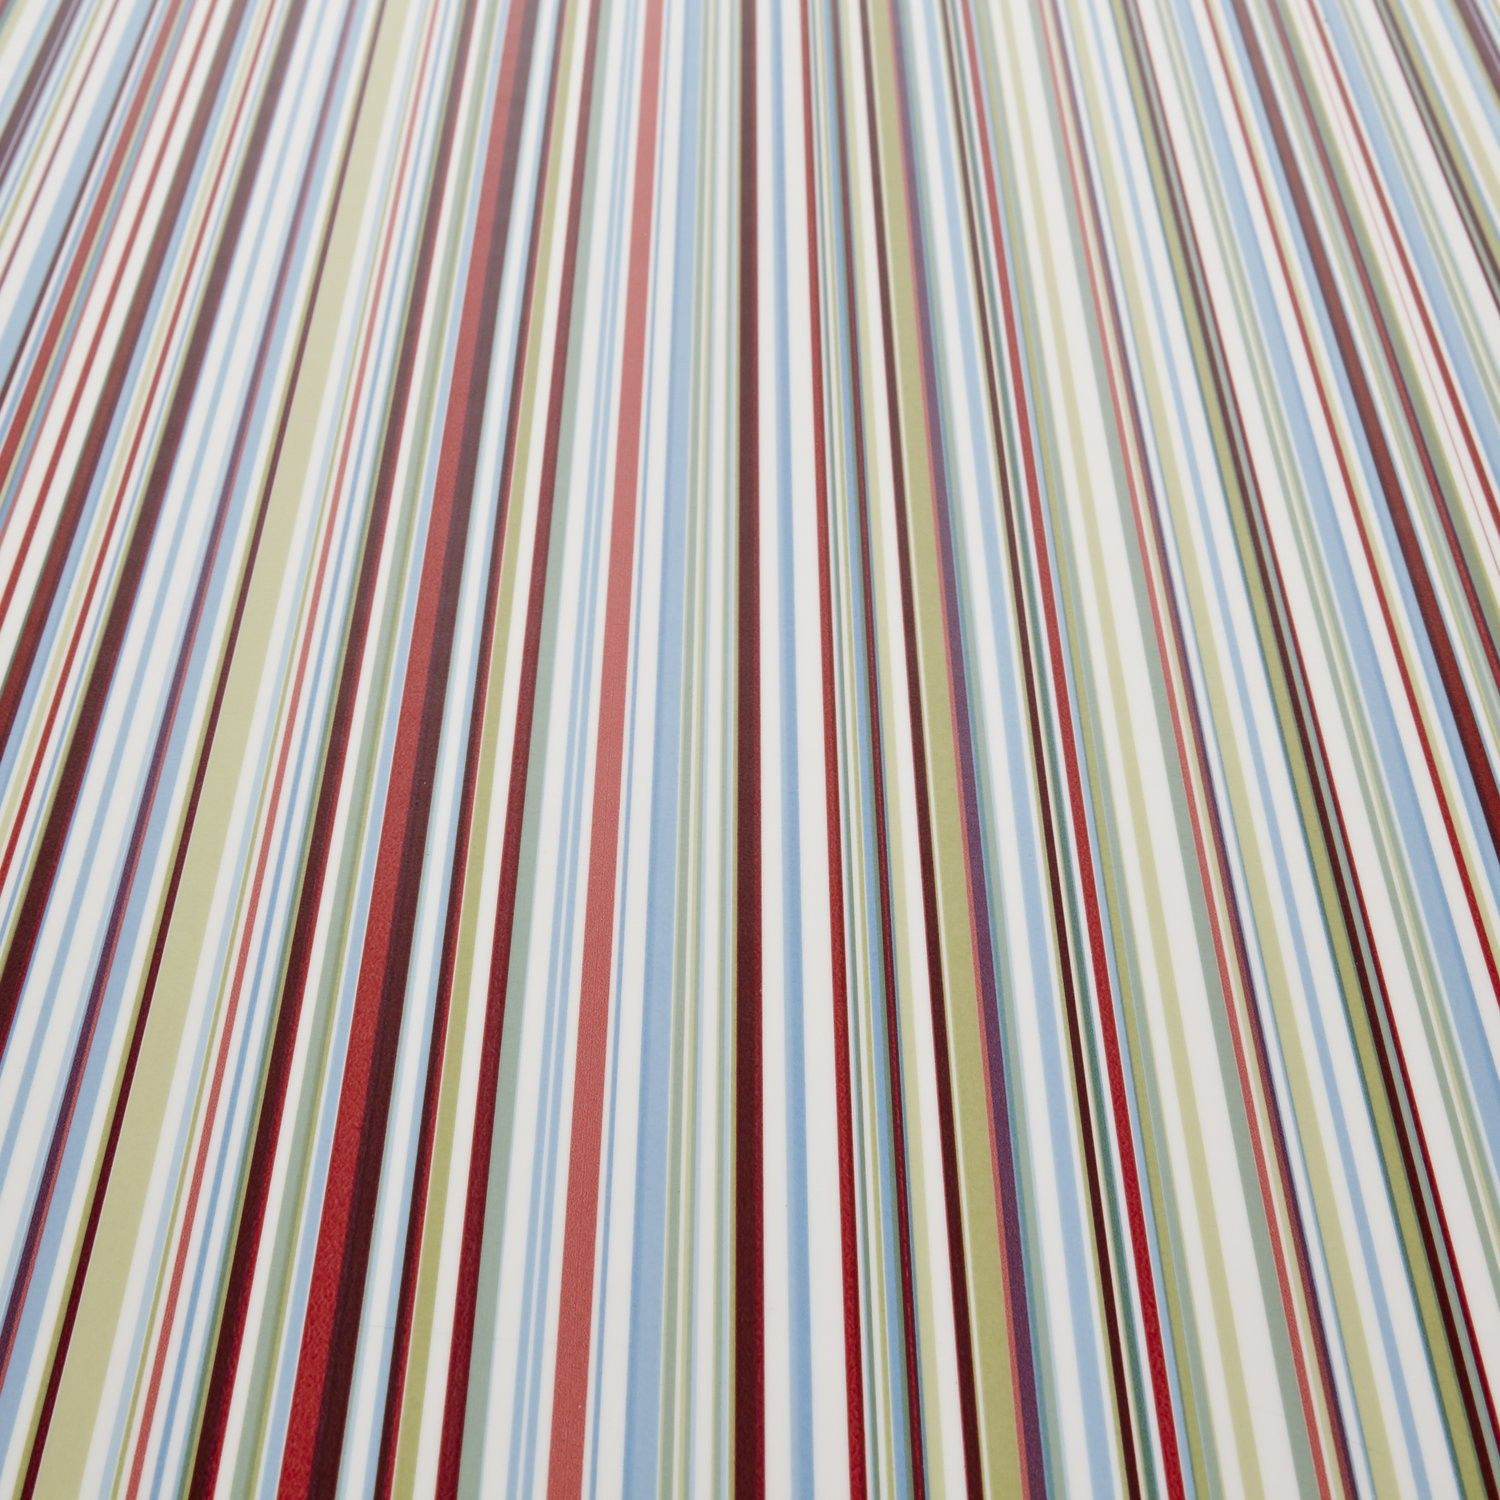 Mardi Gras 75 Stripes Vinyl Vinyl, Unique flooring